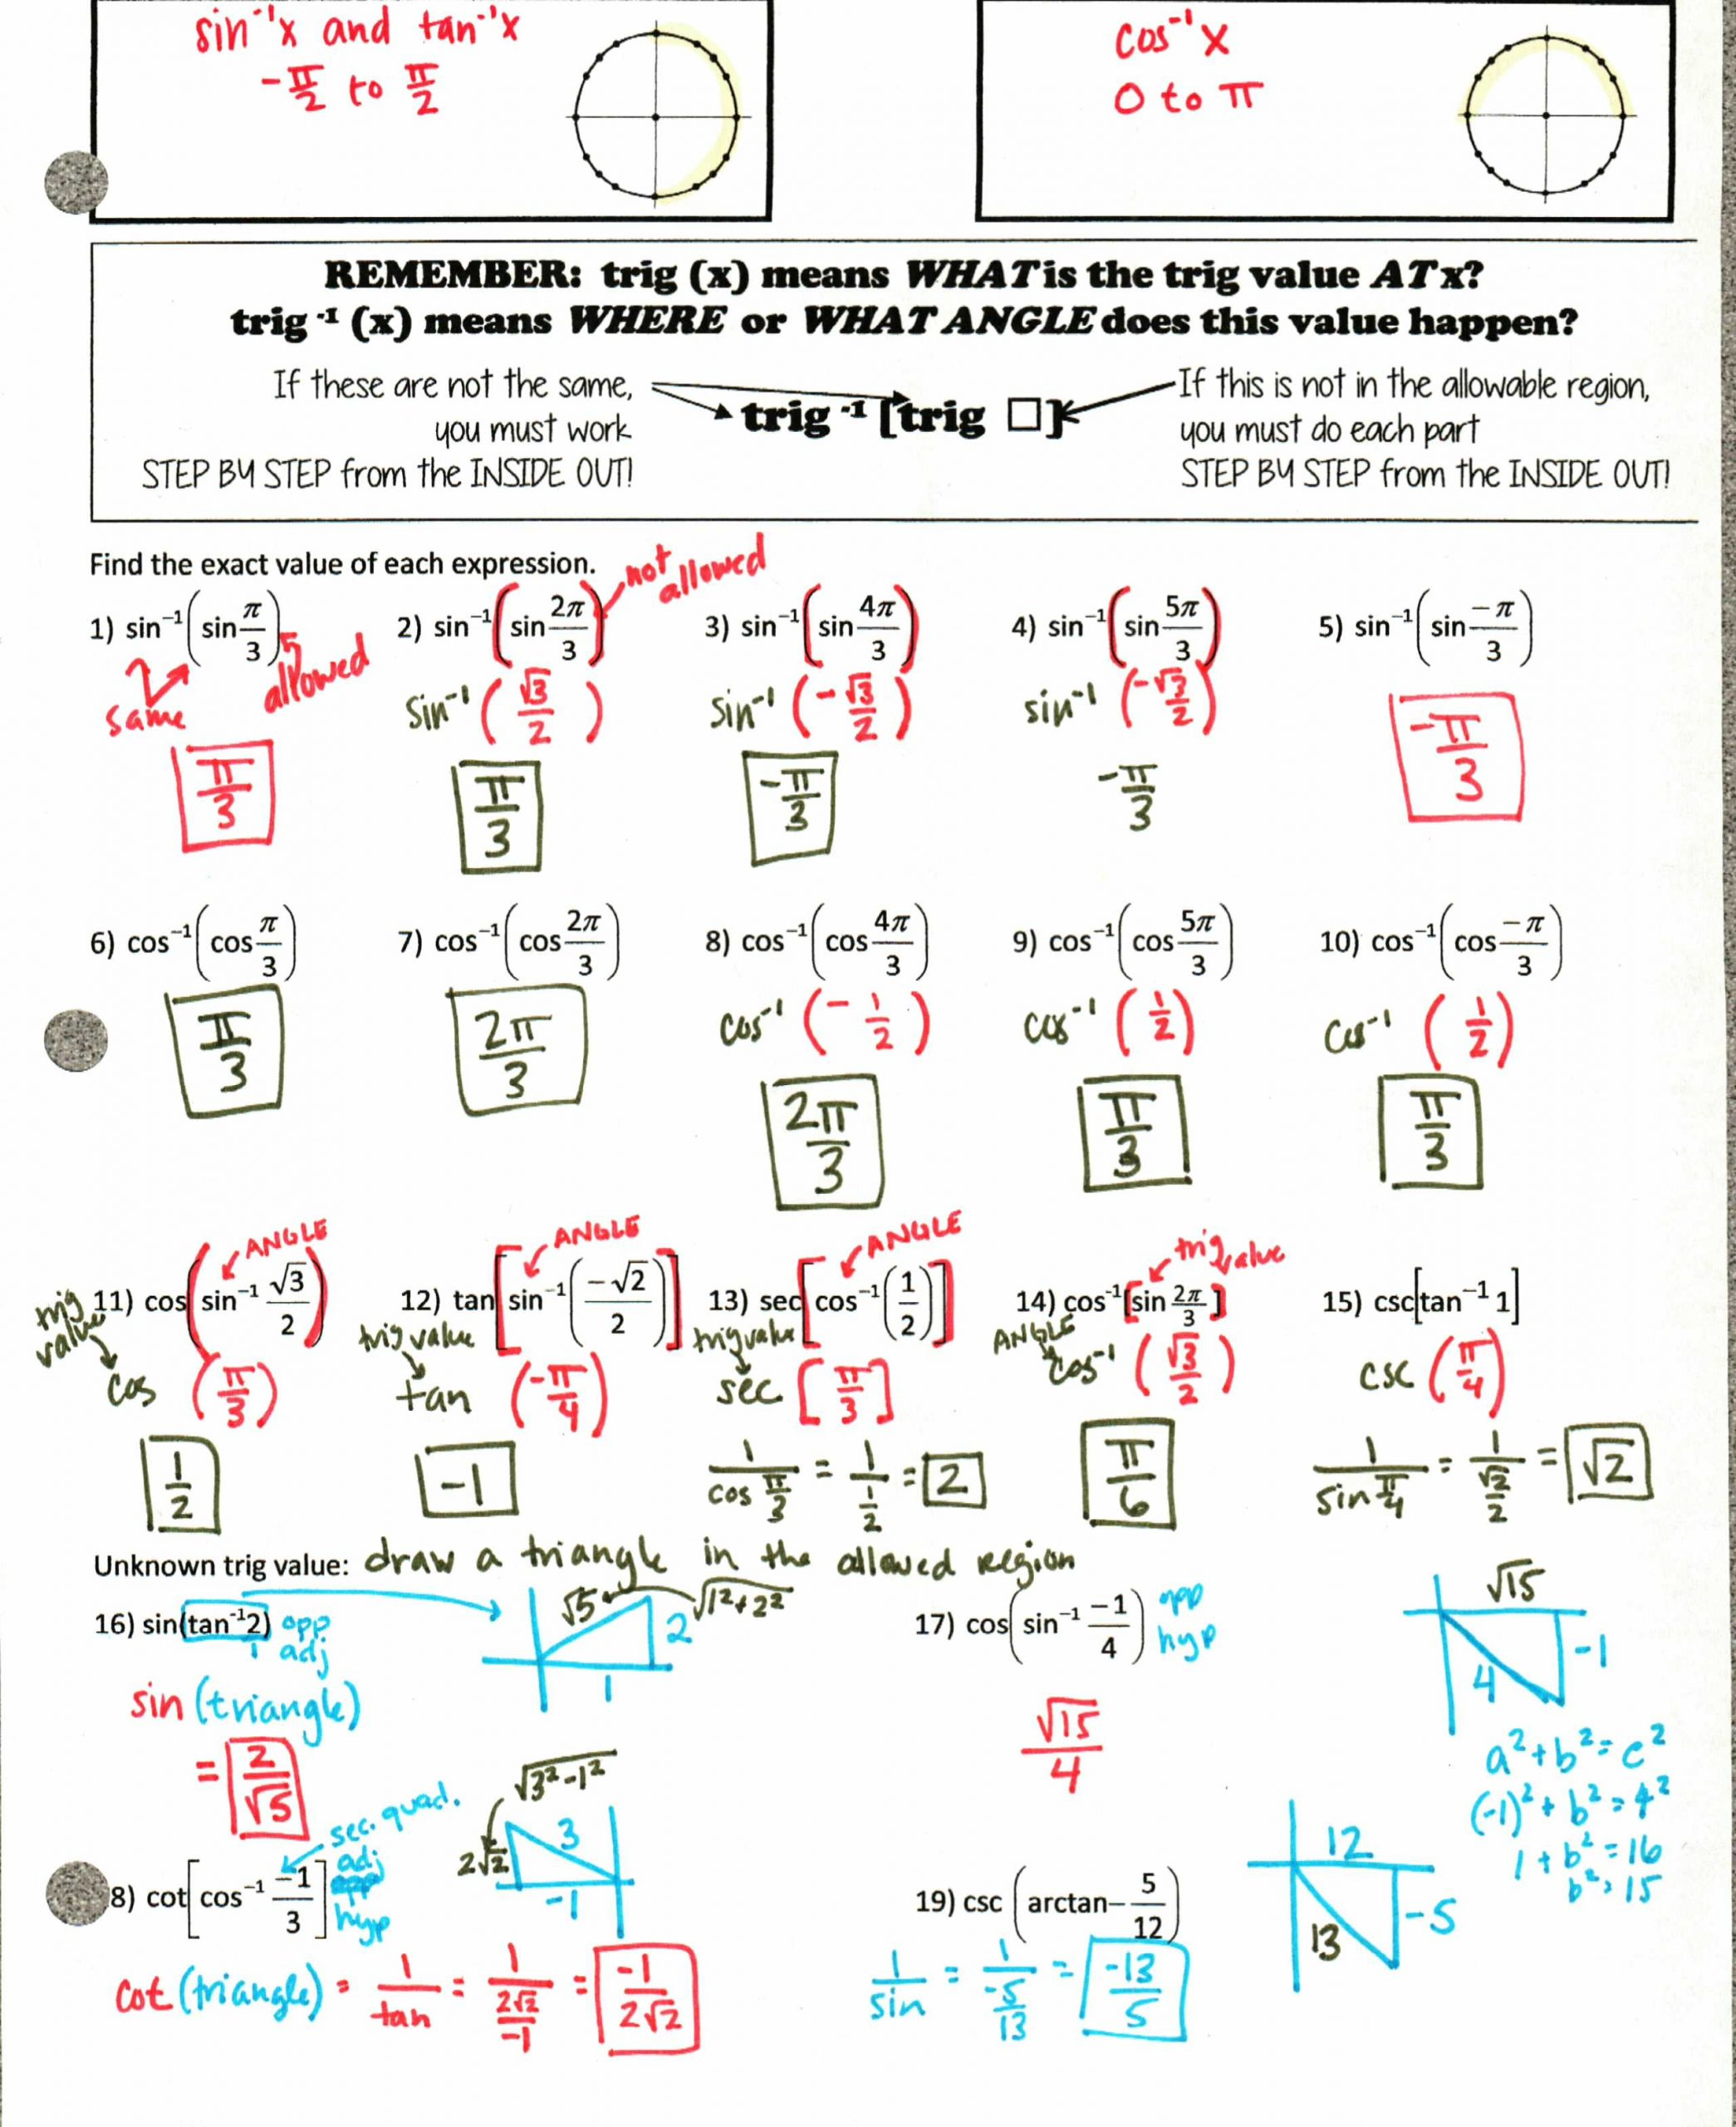 30 Trig Identities Worksheet With Answers